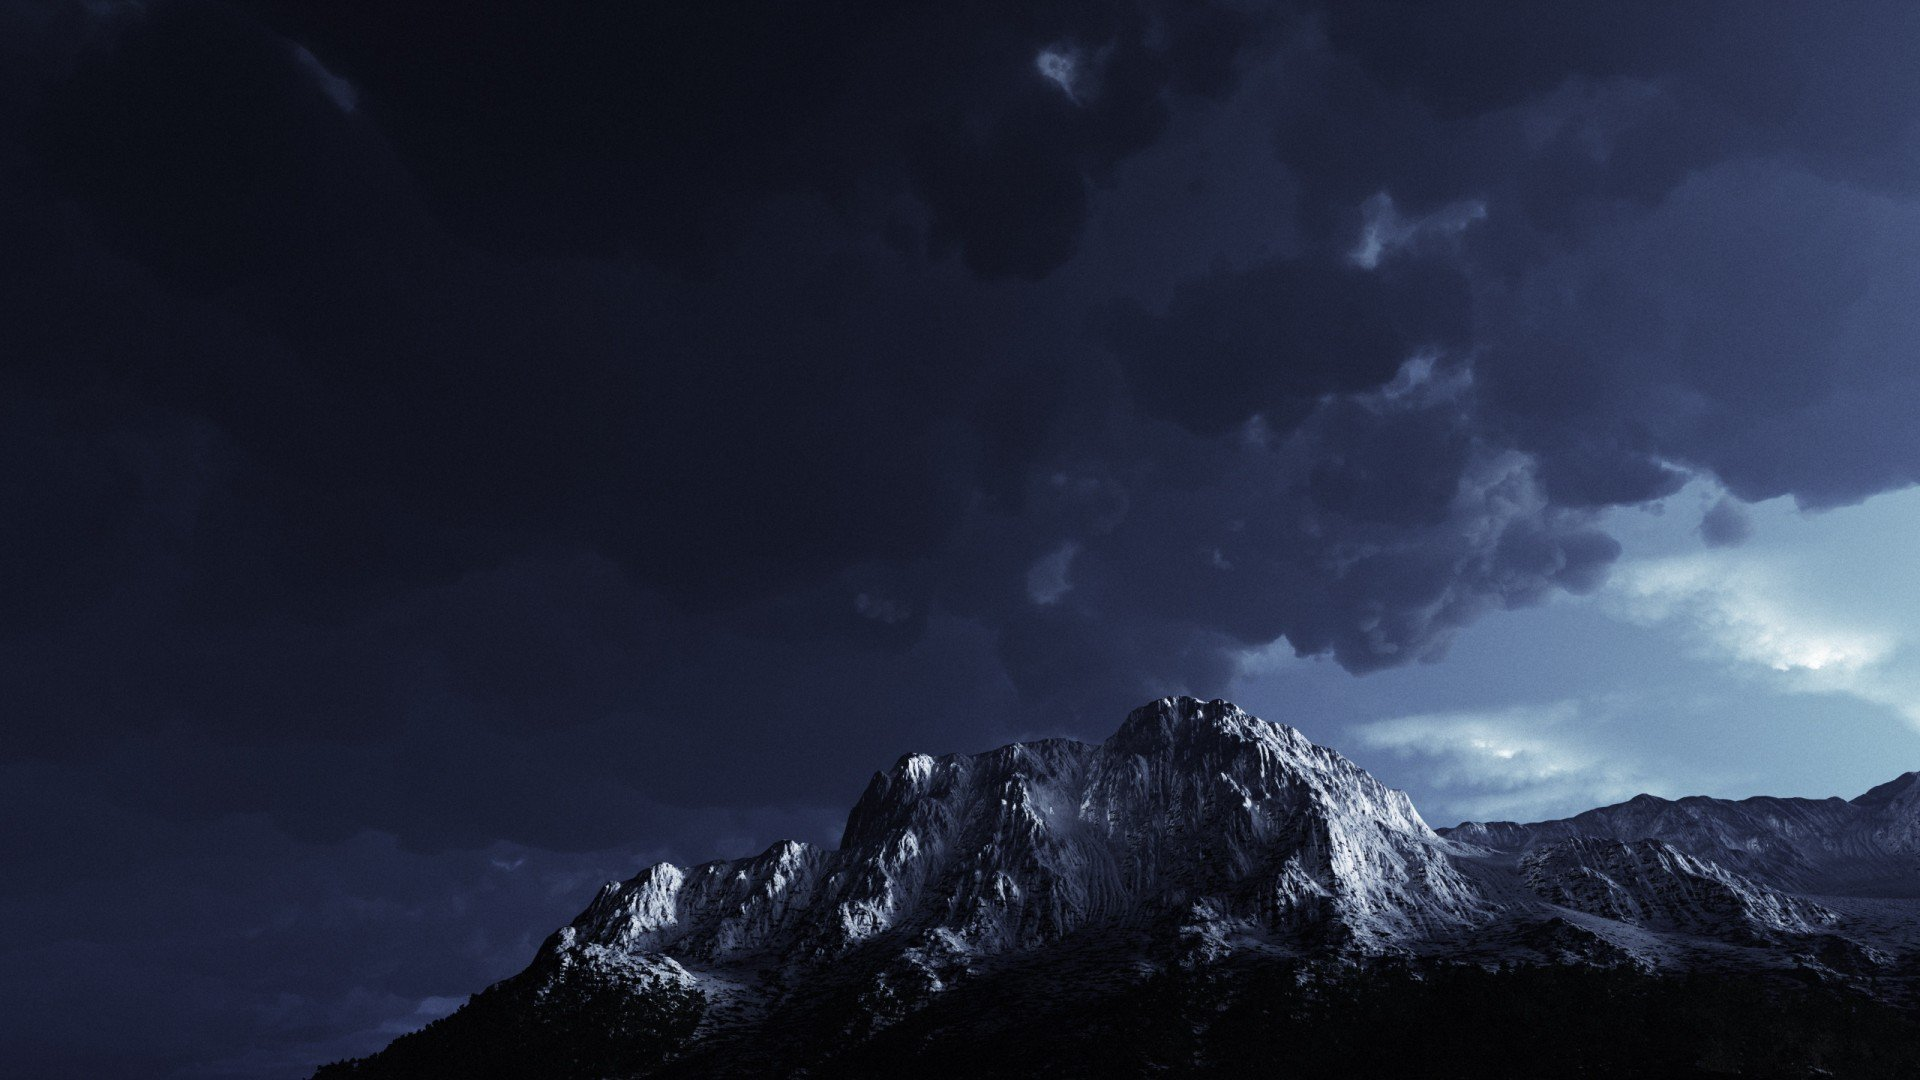 Dark Storm Mountain HD Desktop Wallpaper 1 WallpaperCowcom 1920x1080